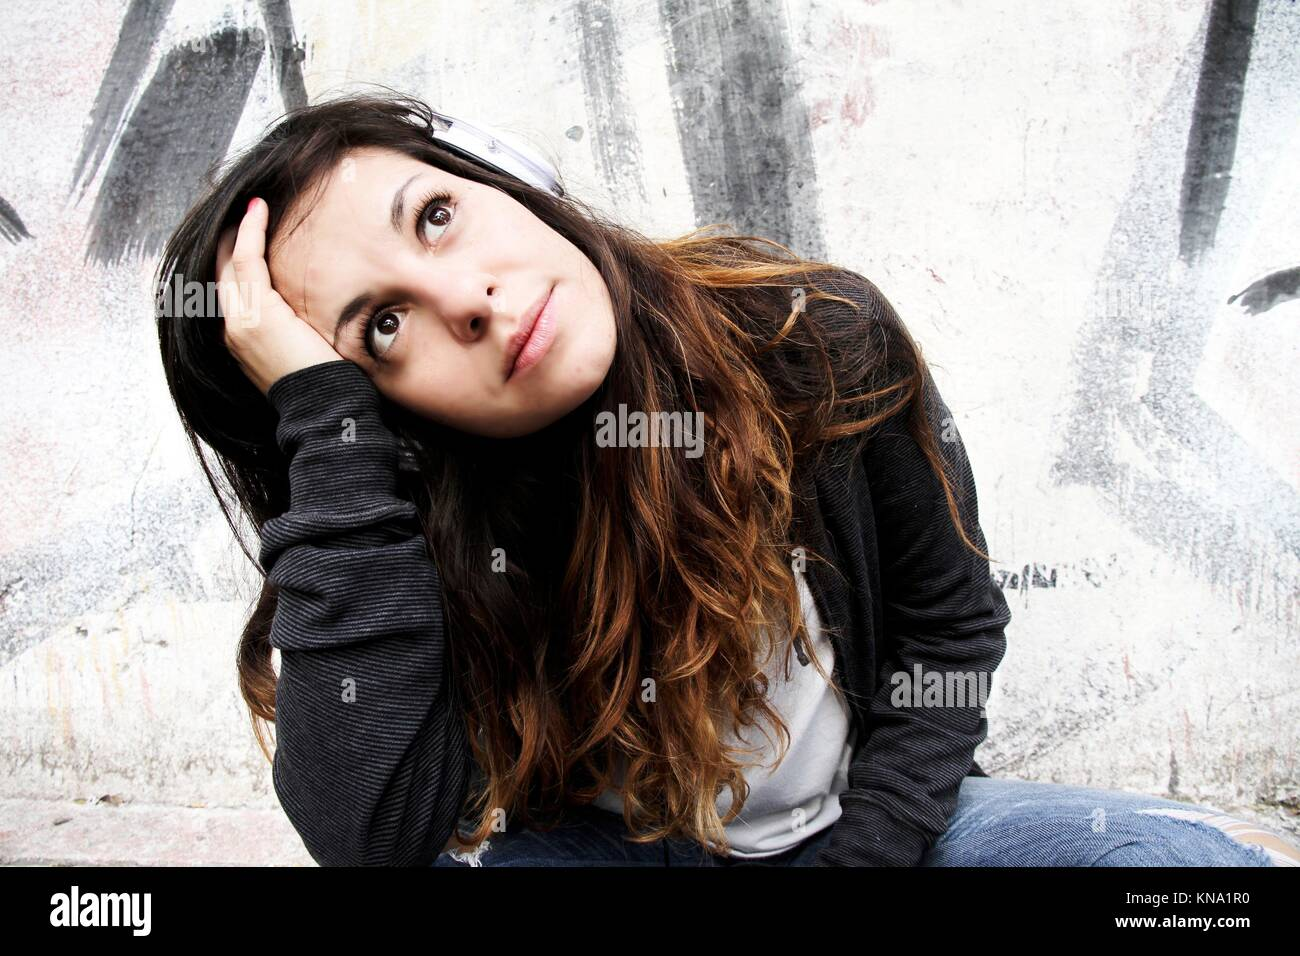 A young woman listening to melancholic Music and sitting on the pavement. - Stock Image